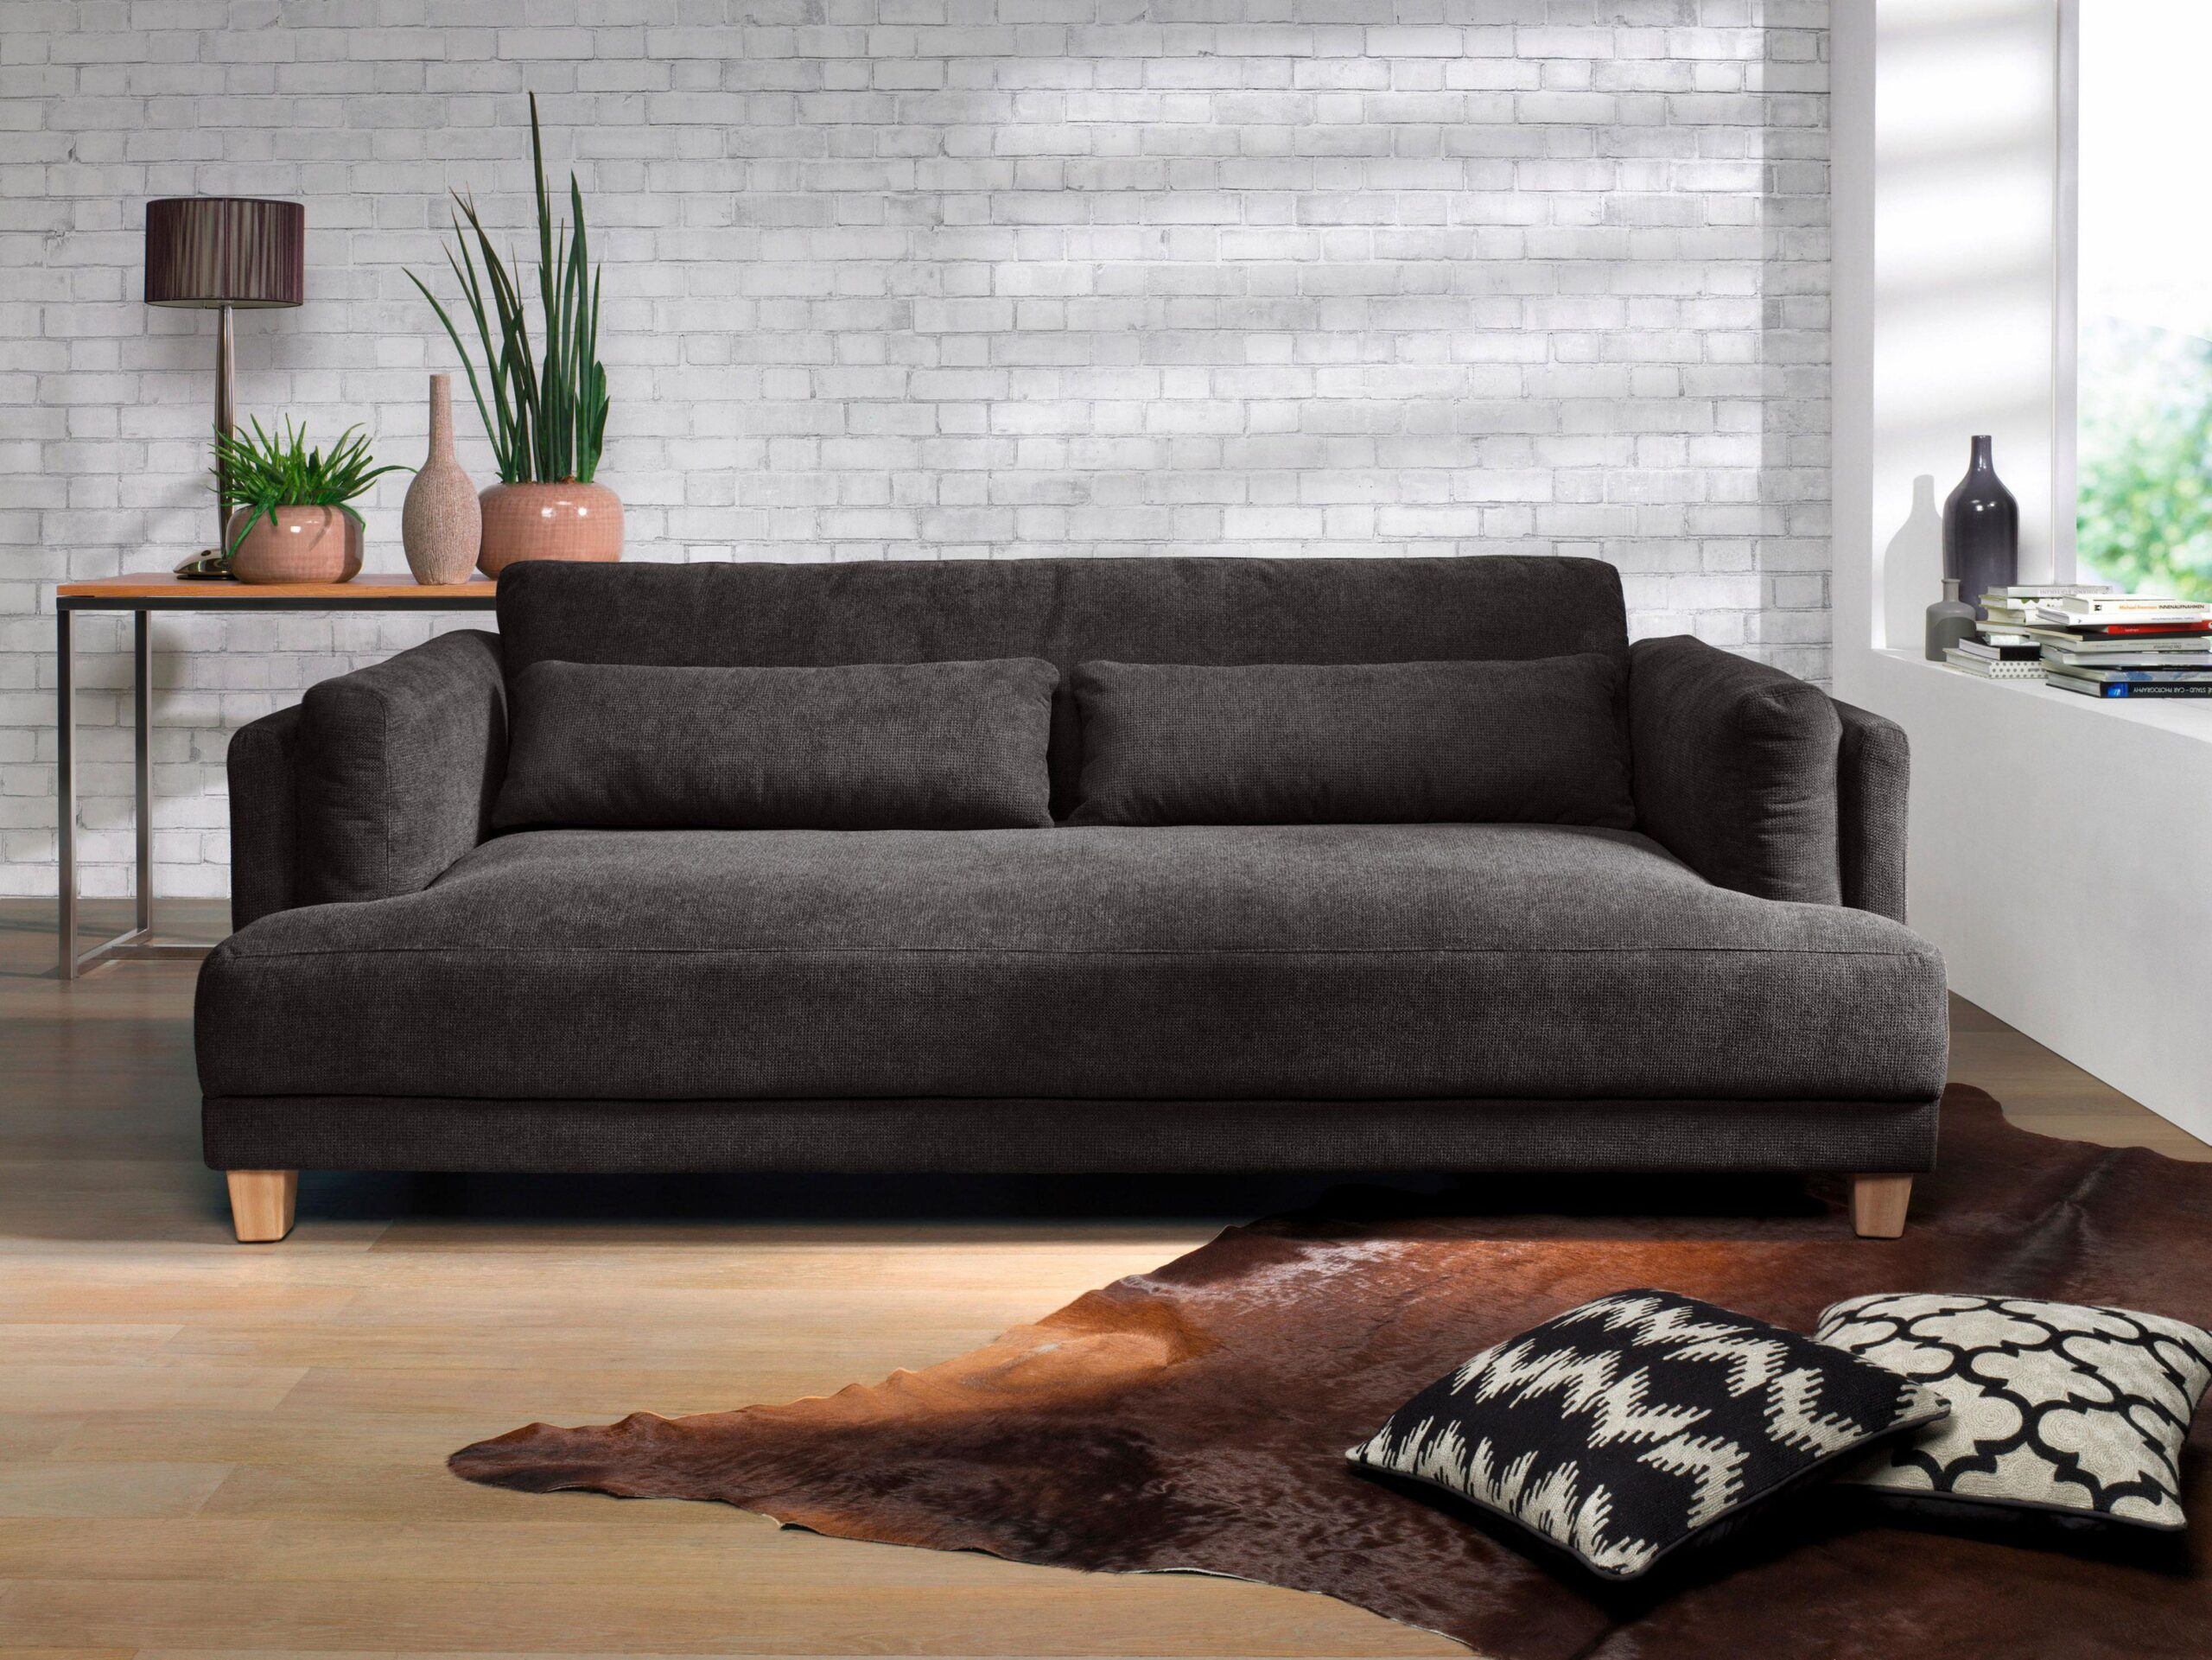 Full Size of Home Affaire Big Sofa Ramos Kaufen Neu Rattan Brühl Mit Schlaffunktion Koinor U Form Poco Boxspring Tom Tailor Antikes Kolonialstil Inhofer Mega Eck Led Sofa Home Affaire Big Sofa